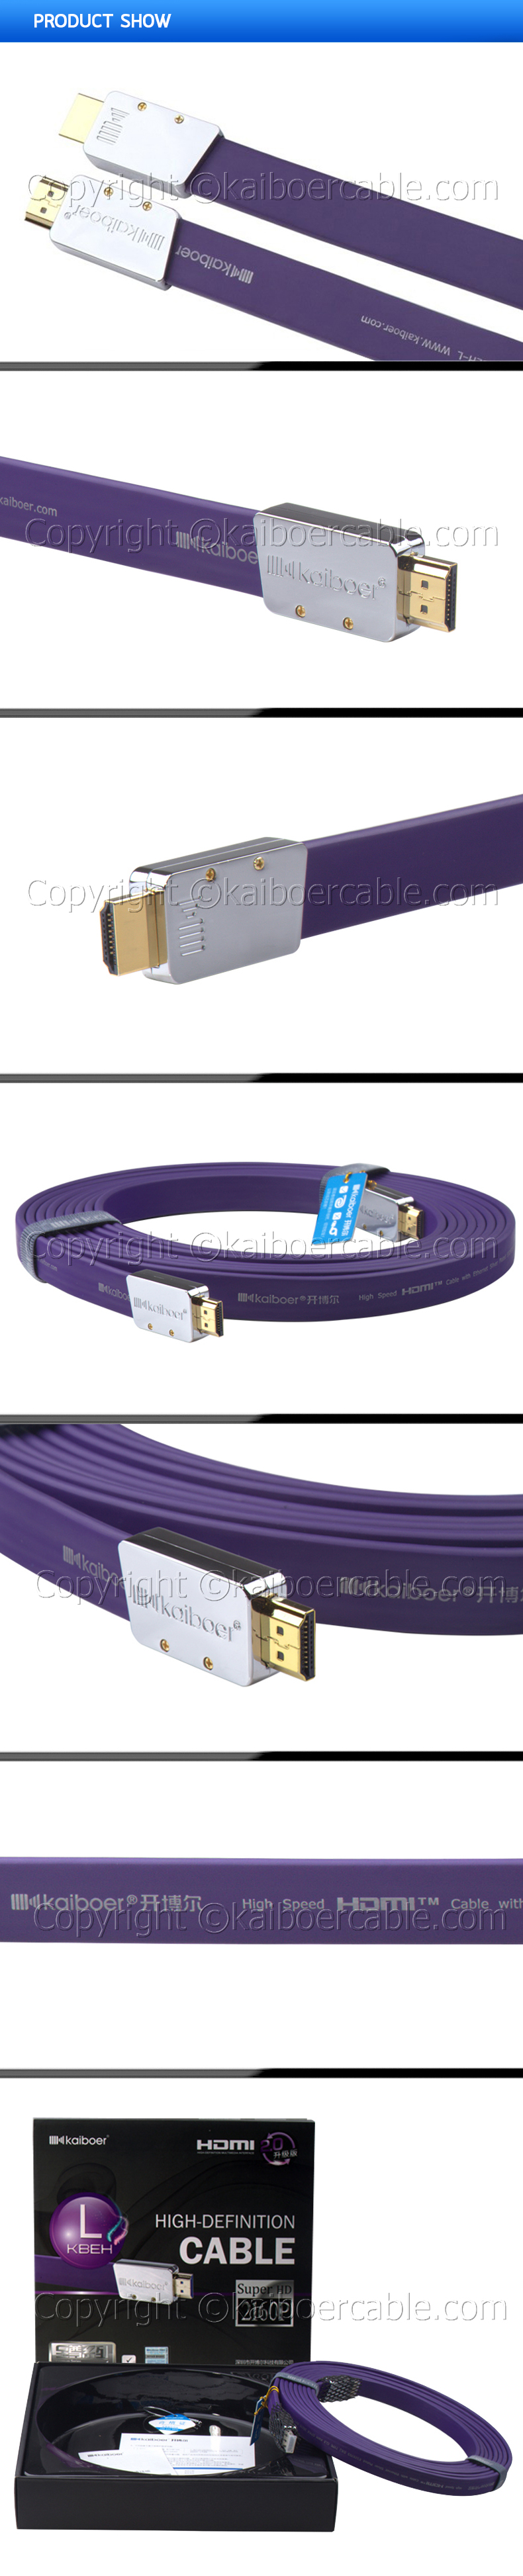 Kaiboer_KBEH_L_Series_HDMI_Cable_Product_Show